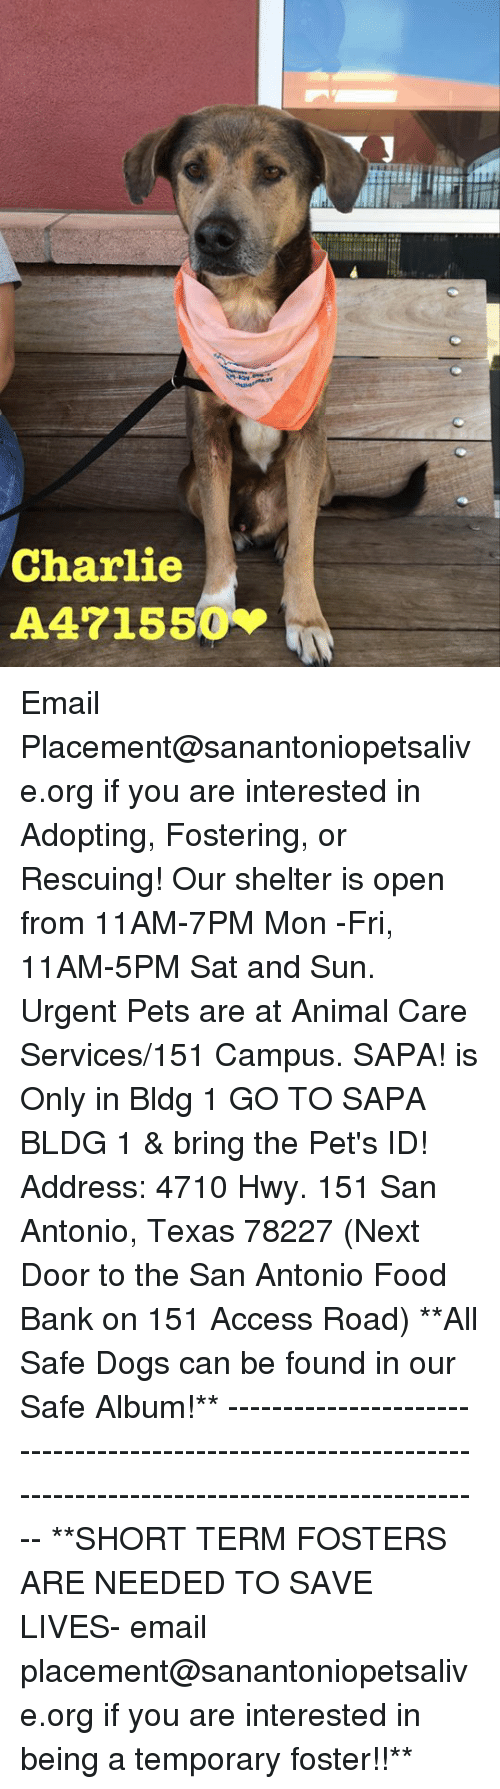 Charlie, Dogs, and Food: Charlie Email Placement@sanantoniopetsalive.org if you are interested in Adopting, Fostering, or Rescuing!  Our shelter is open from 11AM-7PM Mon -Fri, 11AM-5PM Sat and Sun.  Urgent Pets are at Animal Care Services/151 Campus. SAPA! is Only in Bldg 1 GO TO SAPA BLDG 1 & bring the Pet's ID! Address: 4710 Hwy. 151 San Antonio, Texas 78227 (Next Door to the San Antonio Food Bank on 151 Access Road)  **All Safe Dogs can be found in our Safe Album!** ---------------------------------------------------------------------------------------------------------- **SHORT TERM FOSTERS ARE NEEDED TO SAVE LIVES- email placement@sanantoniopetsalive.org if you are interested in being a temporary foster!!**